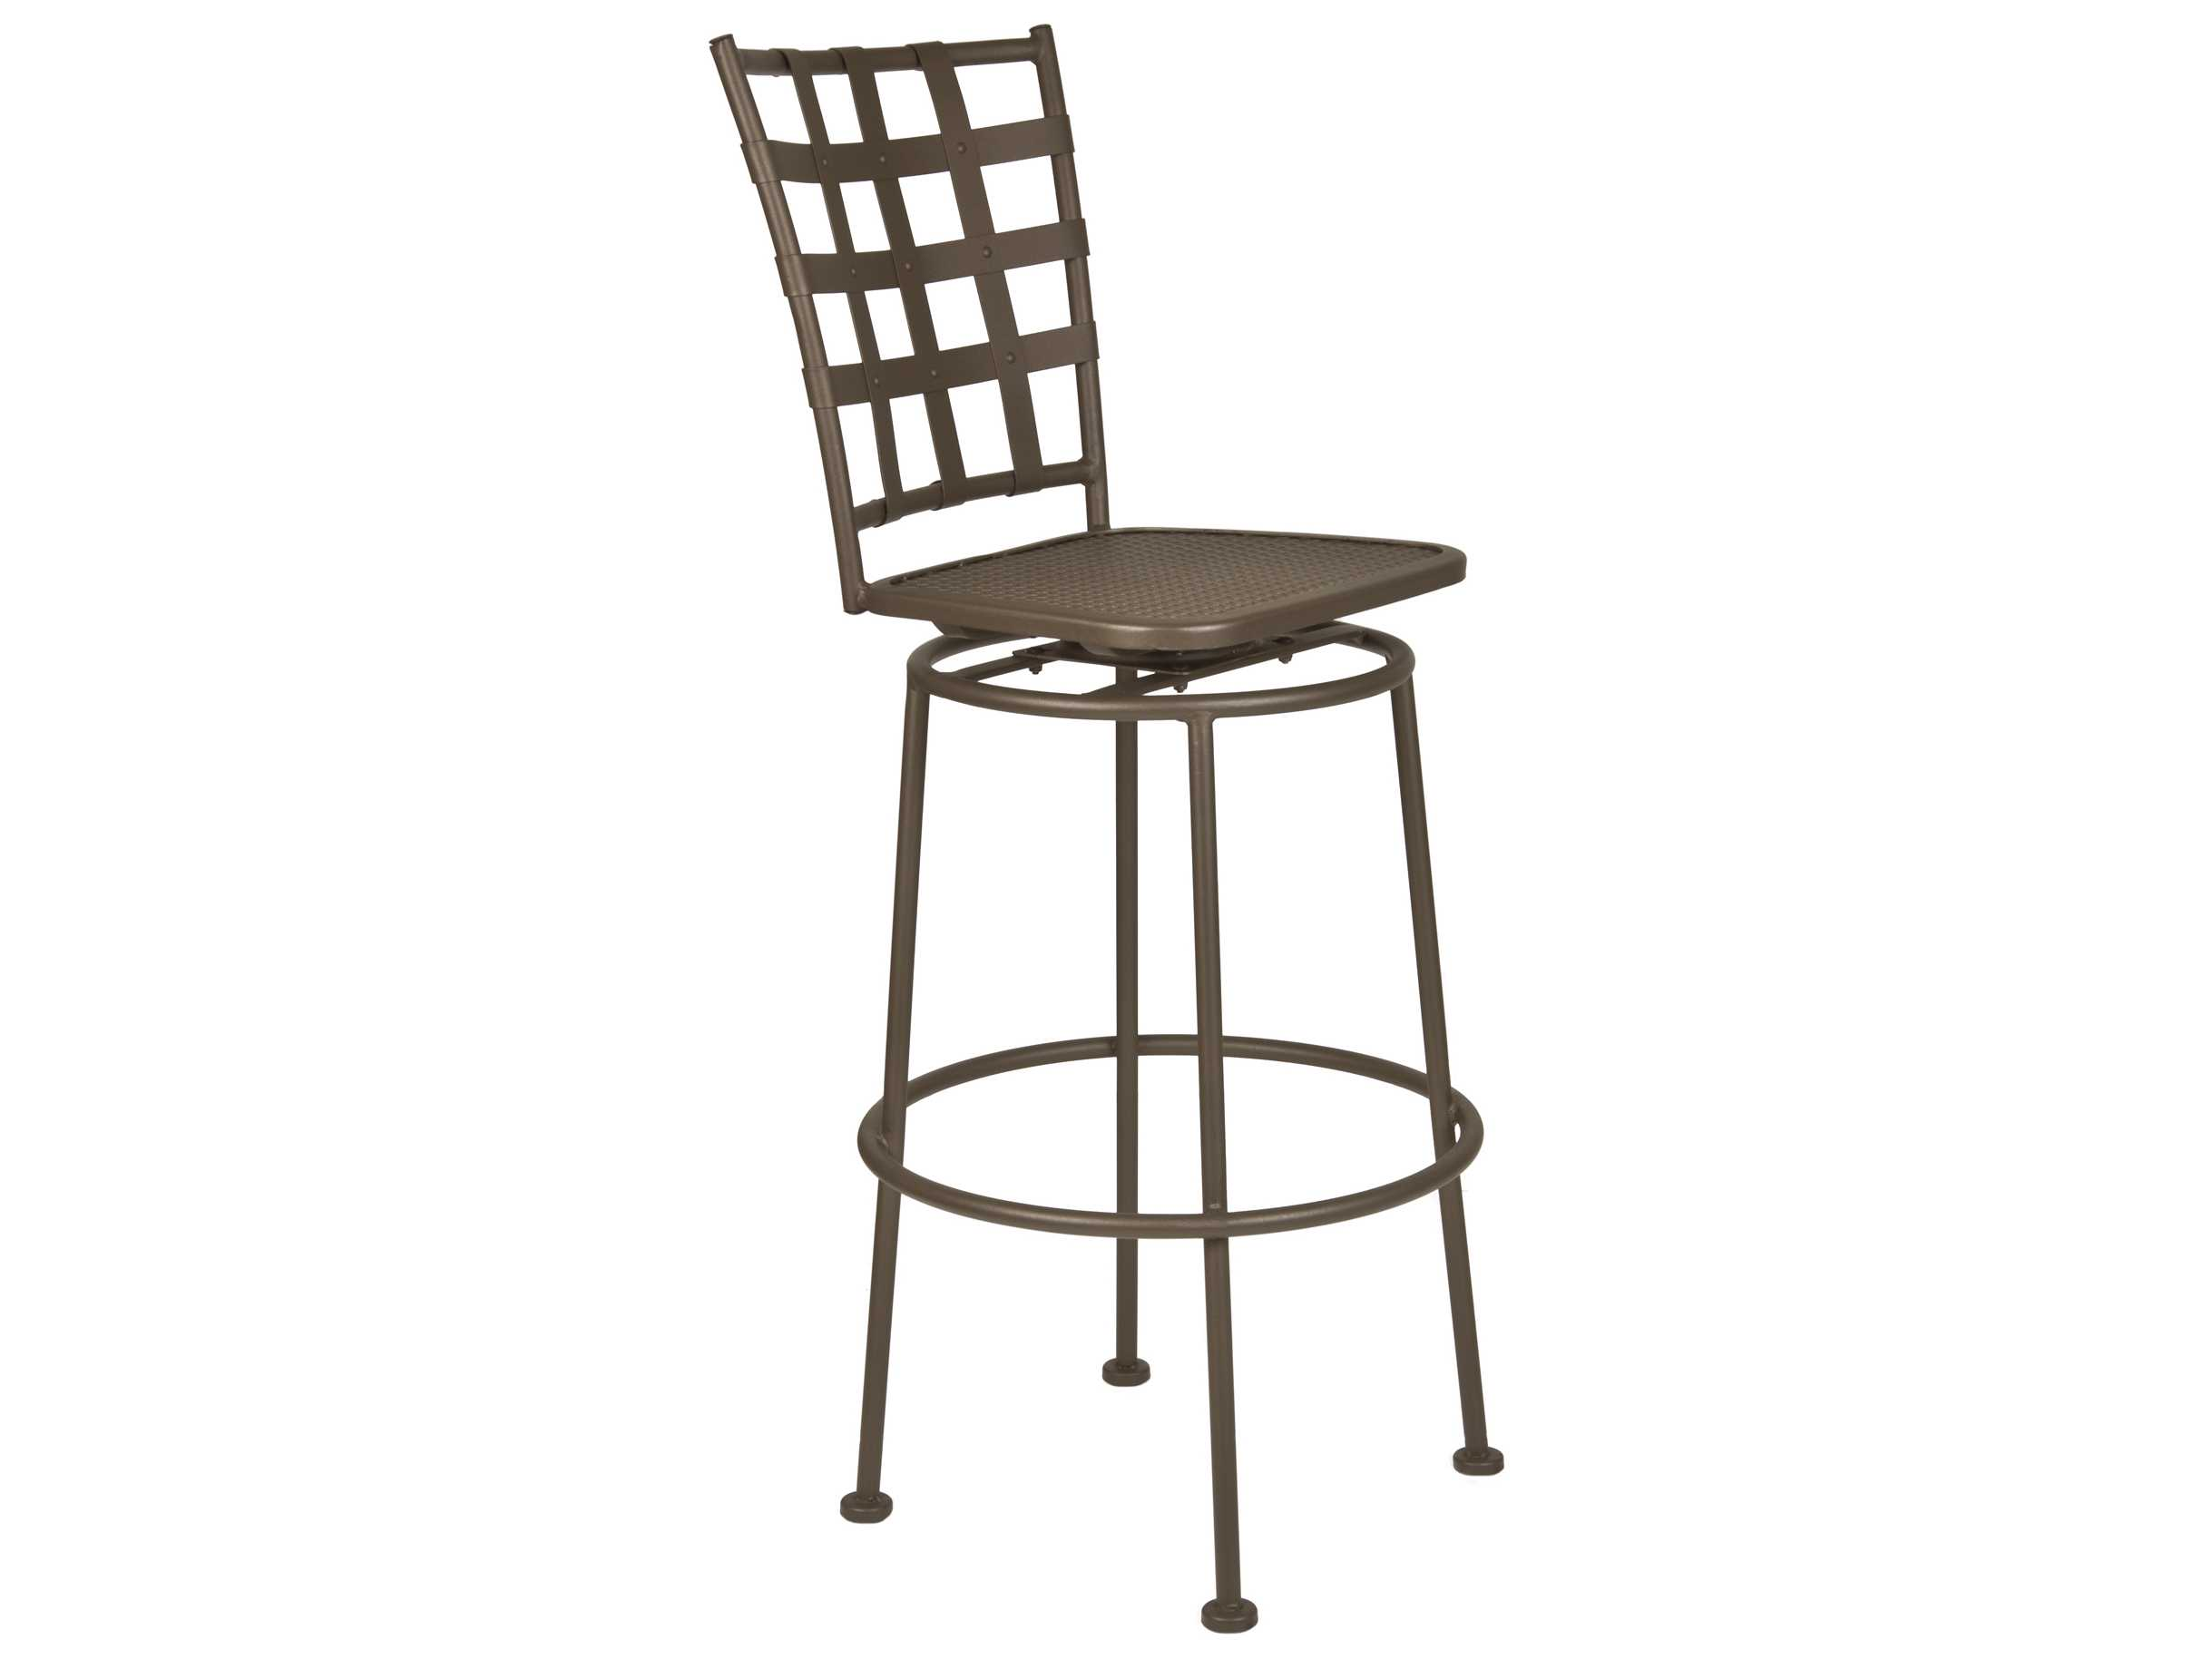 Ow lee casa wrought iron bar stool sbs